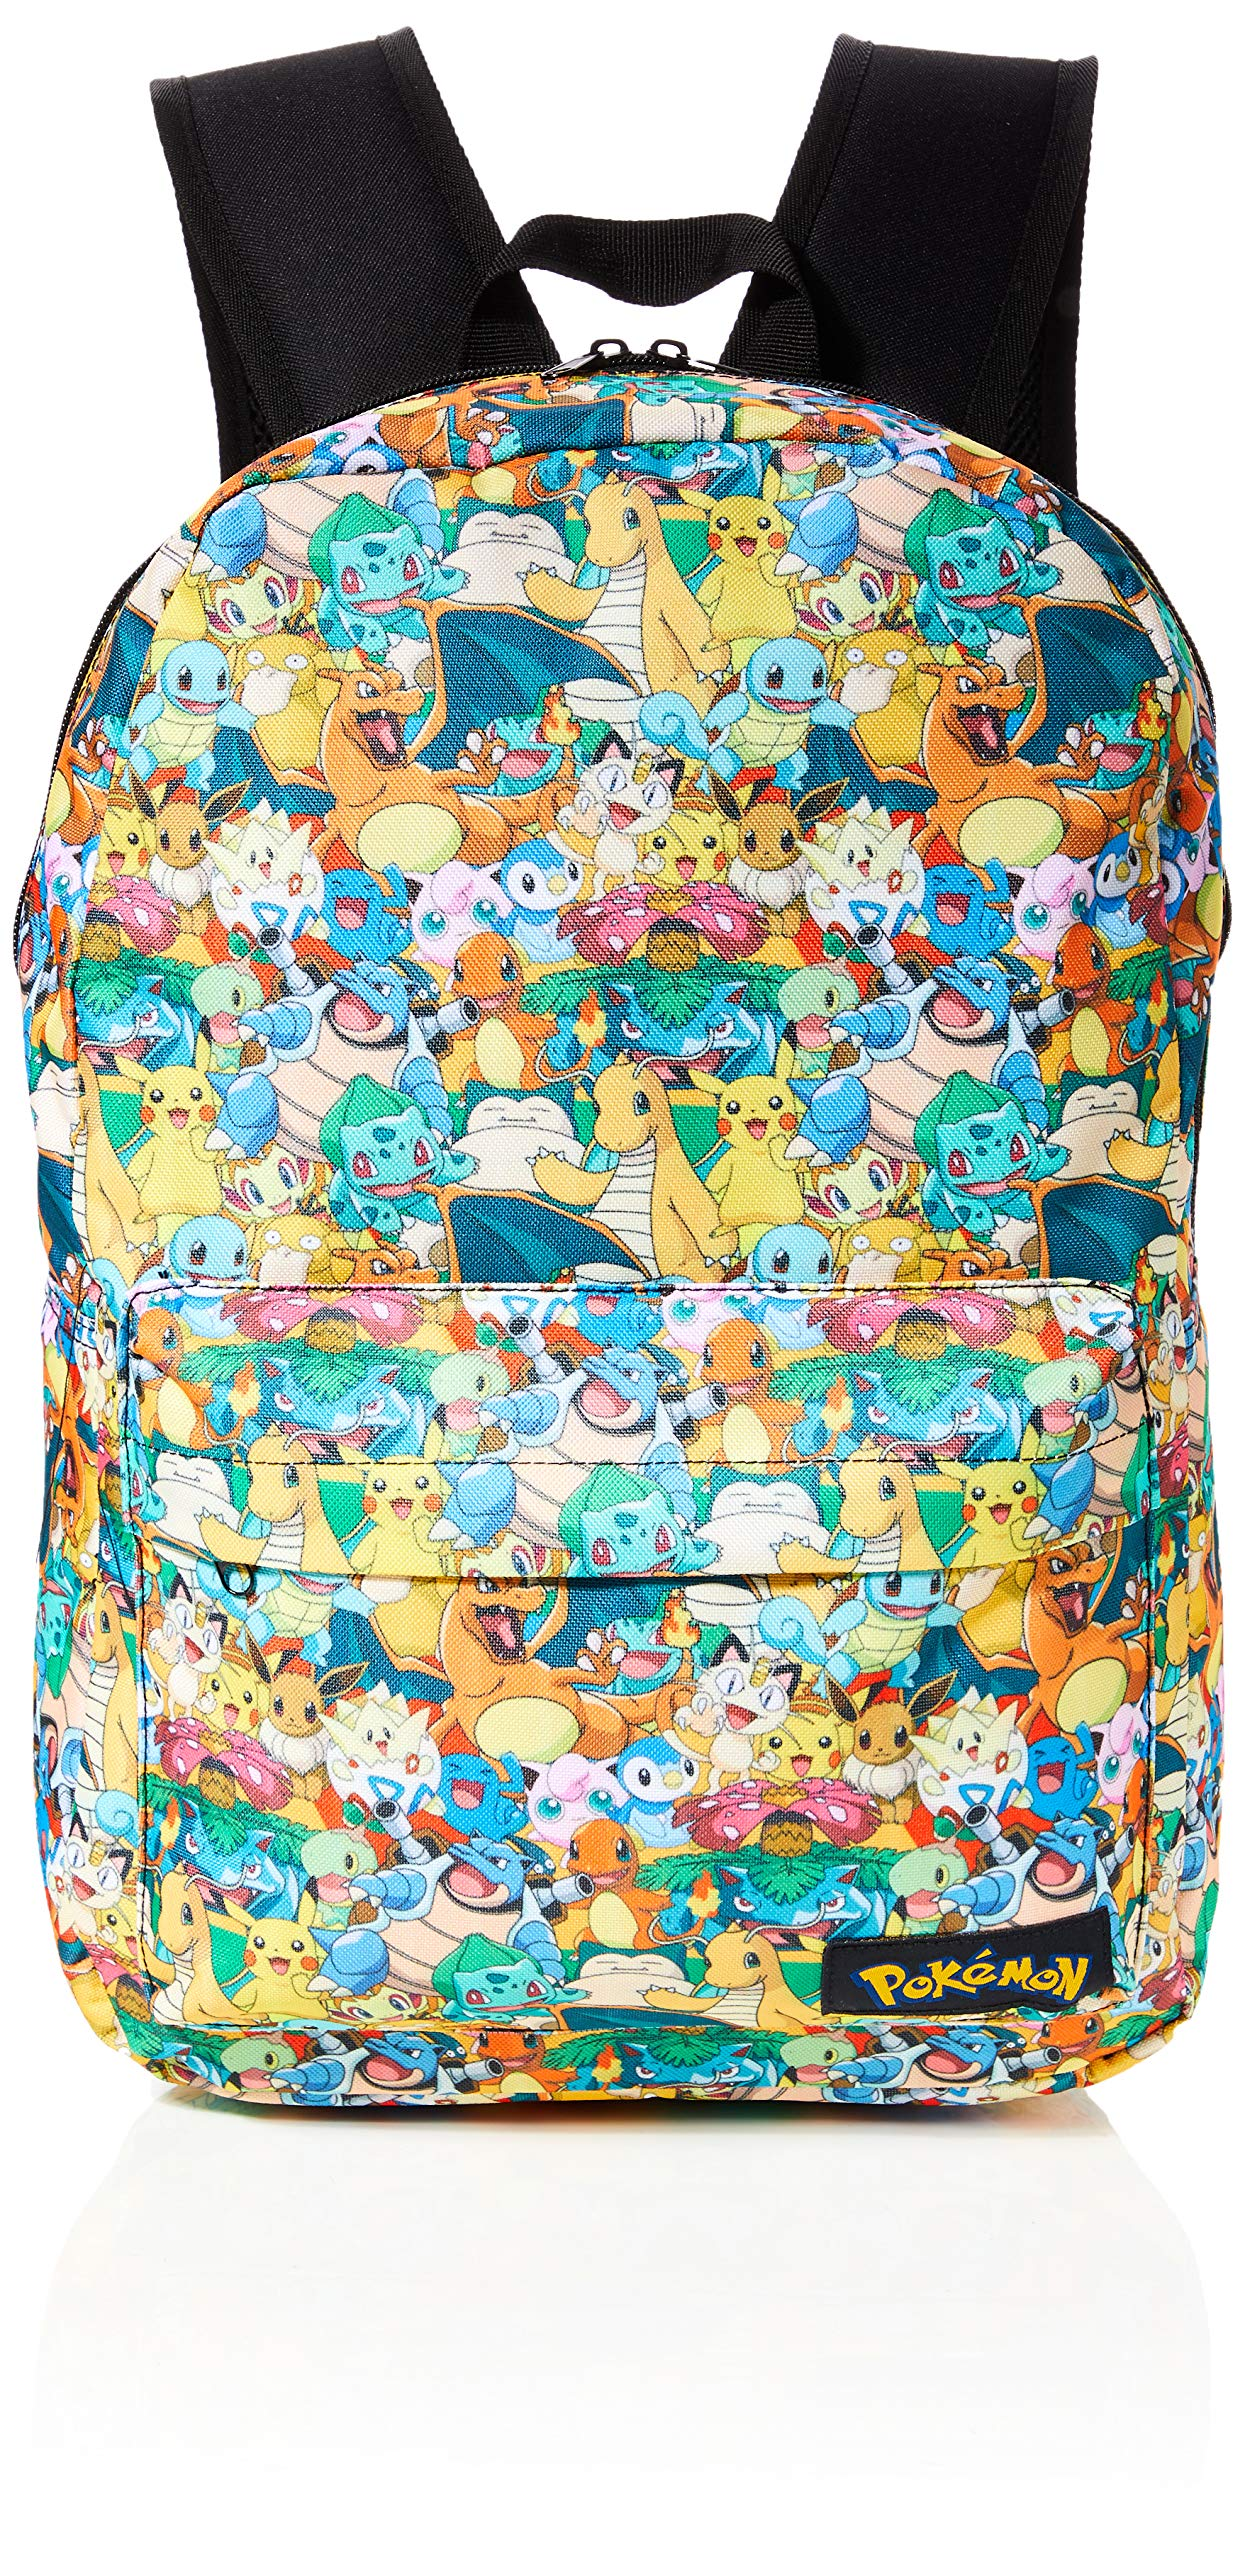 BIO-BP060805POK Pokemon All-over Characters Print Backpack Casual Daypack, Multicolour, 45 cm, 15 Litres